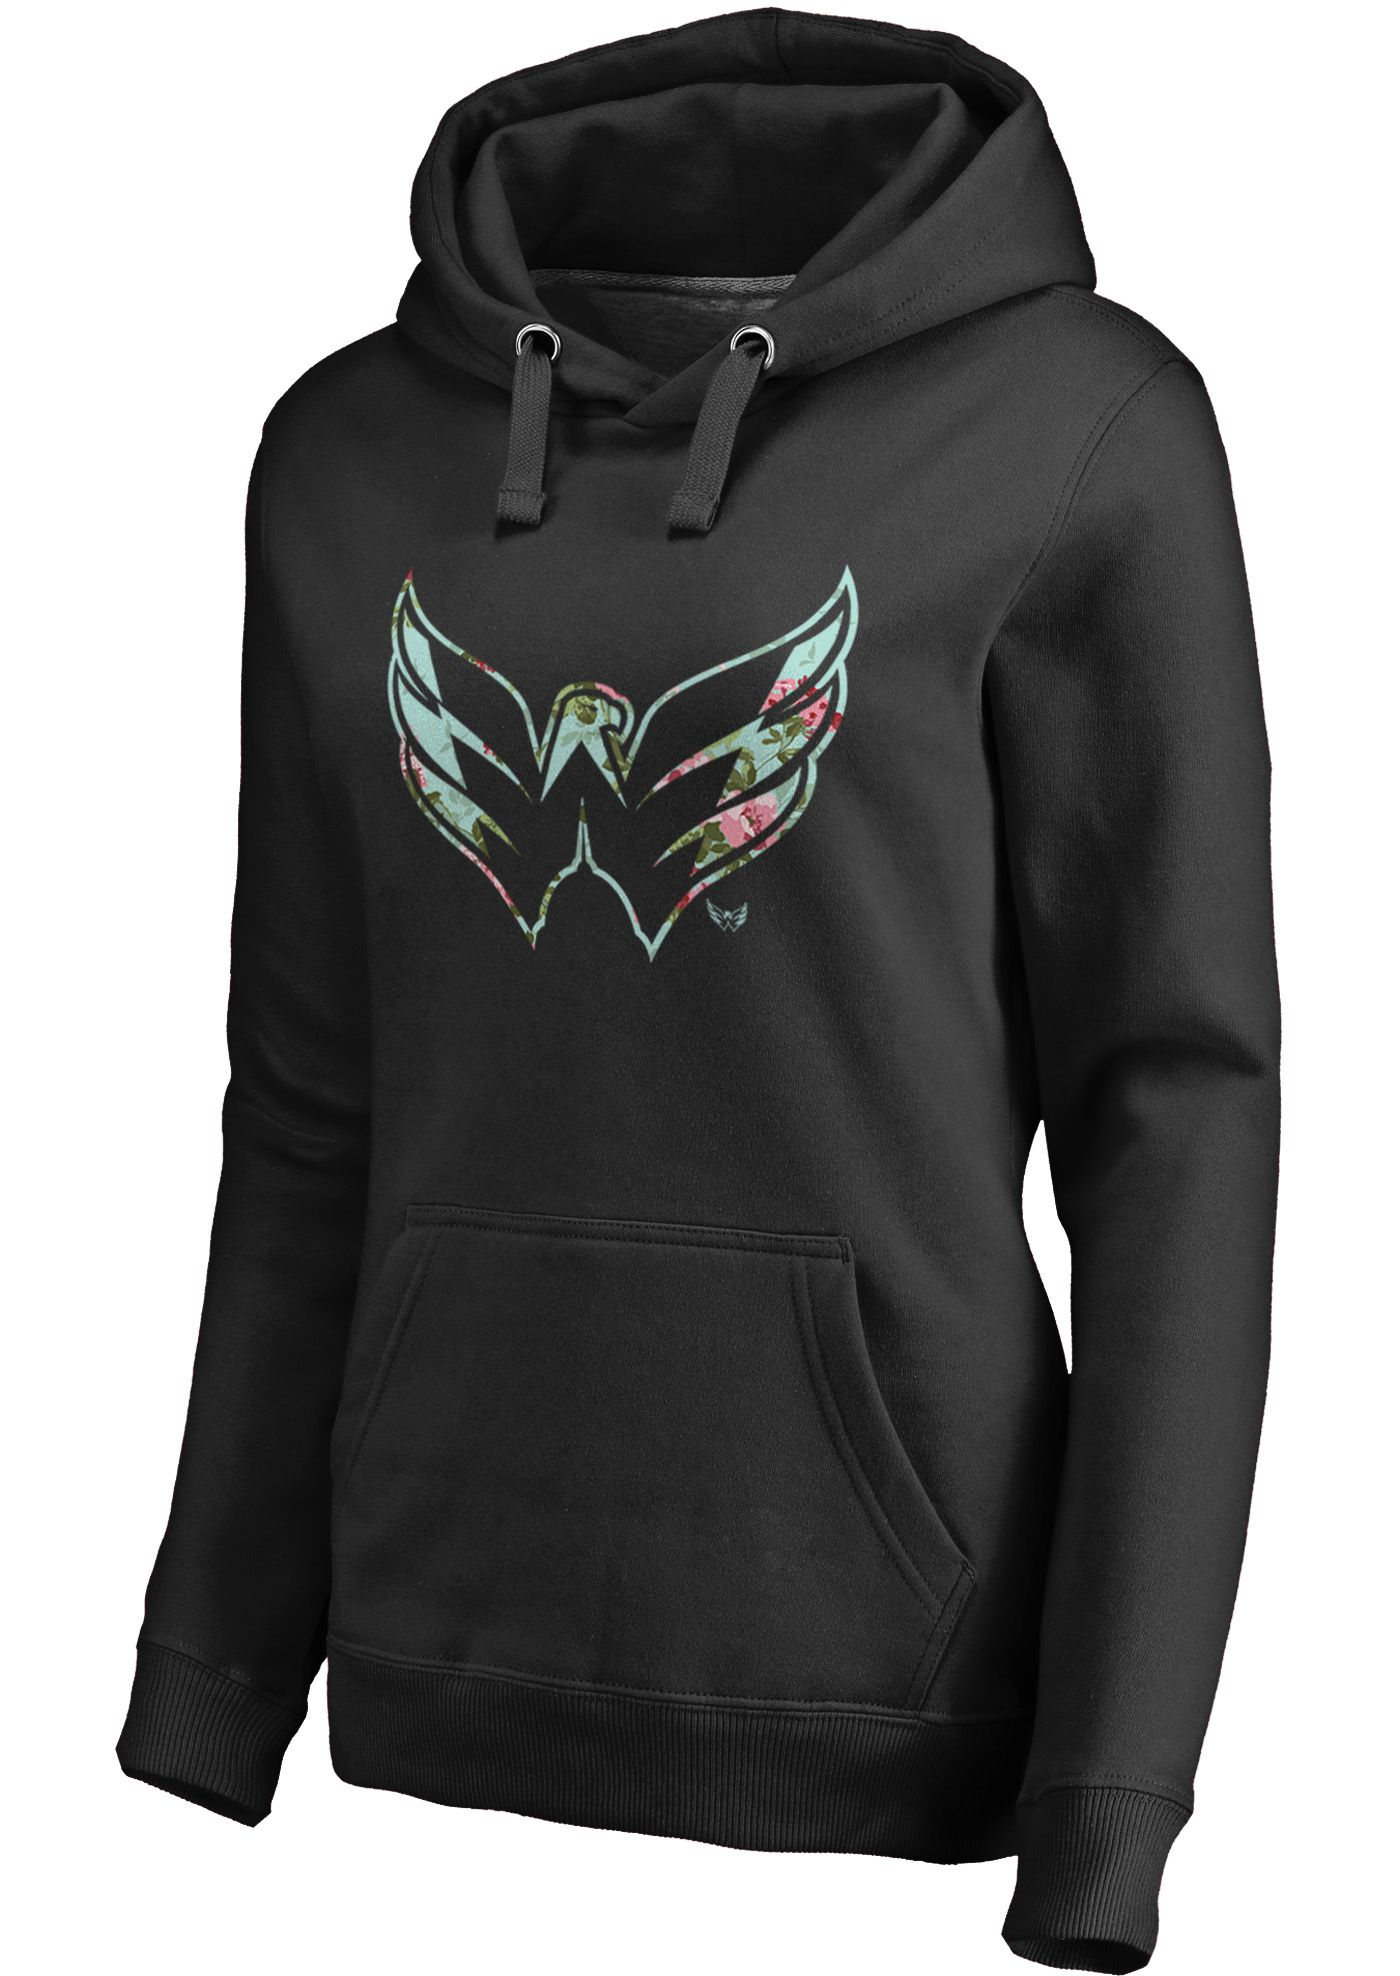 NHL Women's Washington Capitals Lovely Black Pullover Hoodie